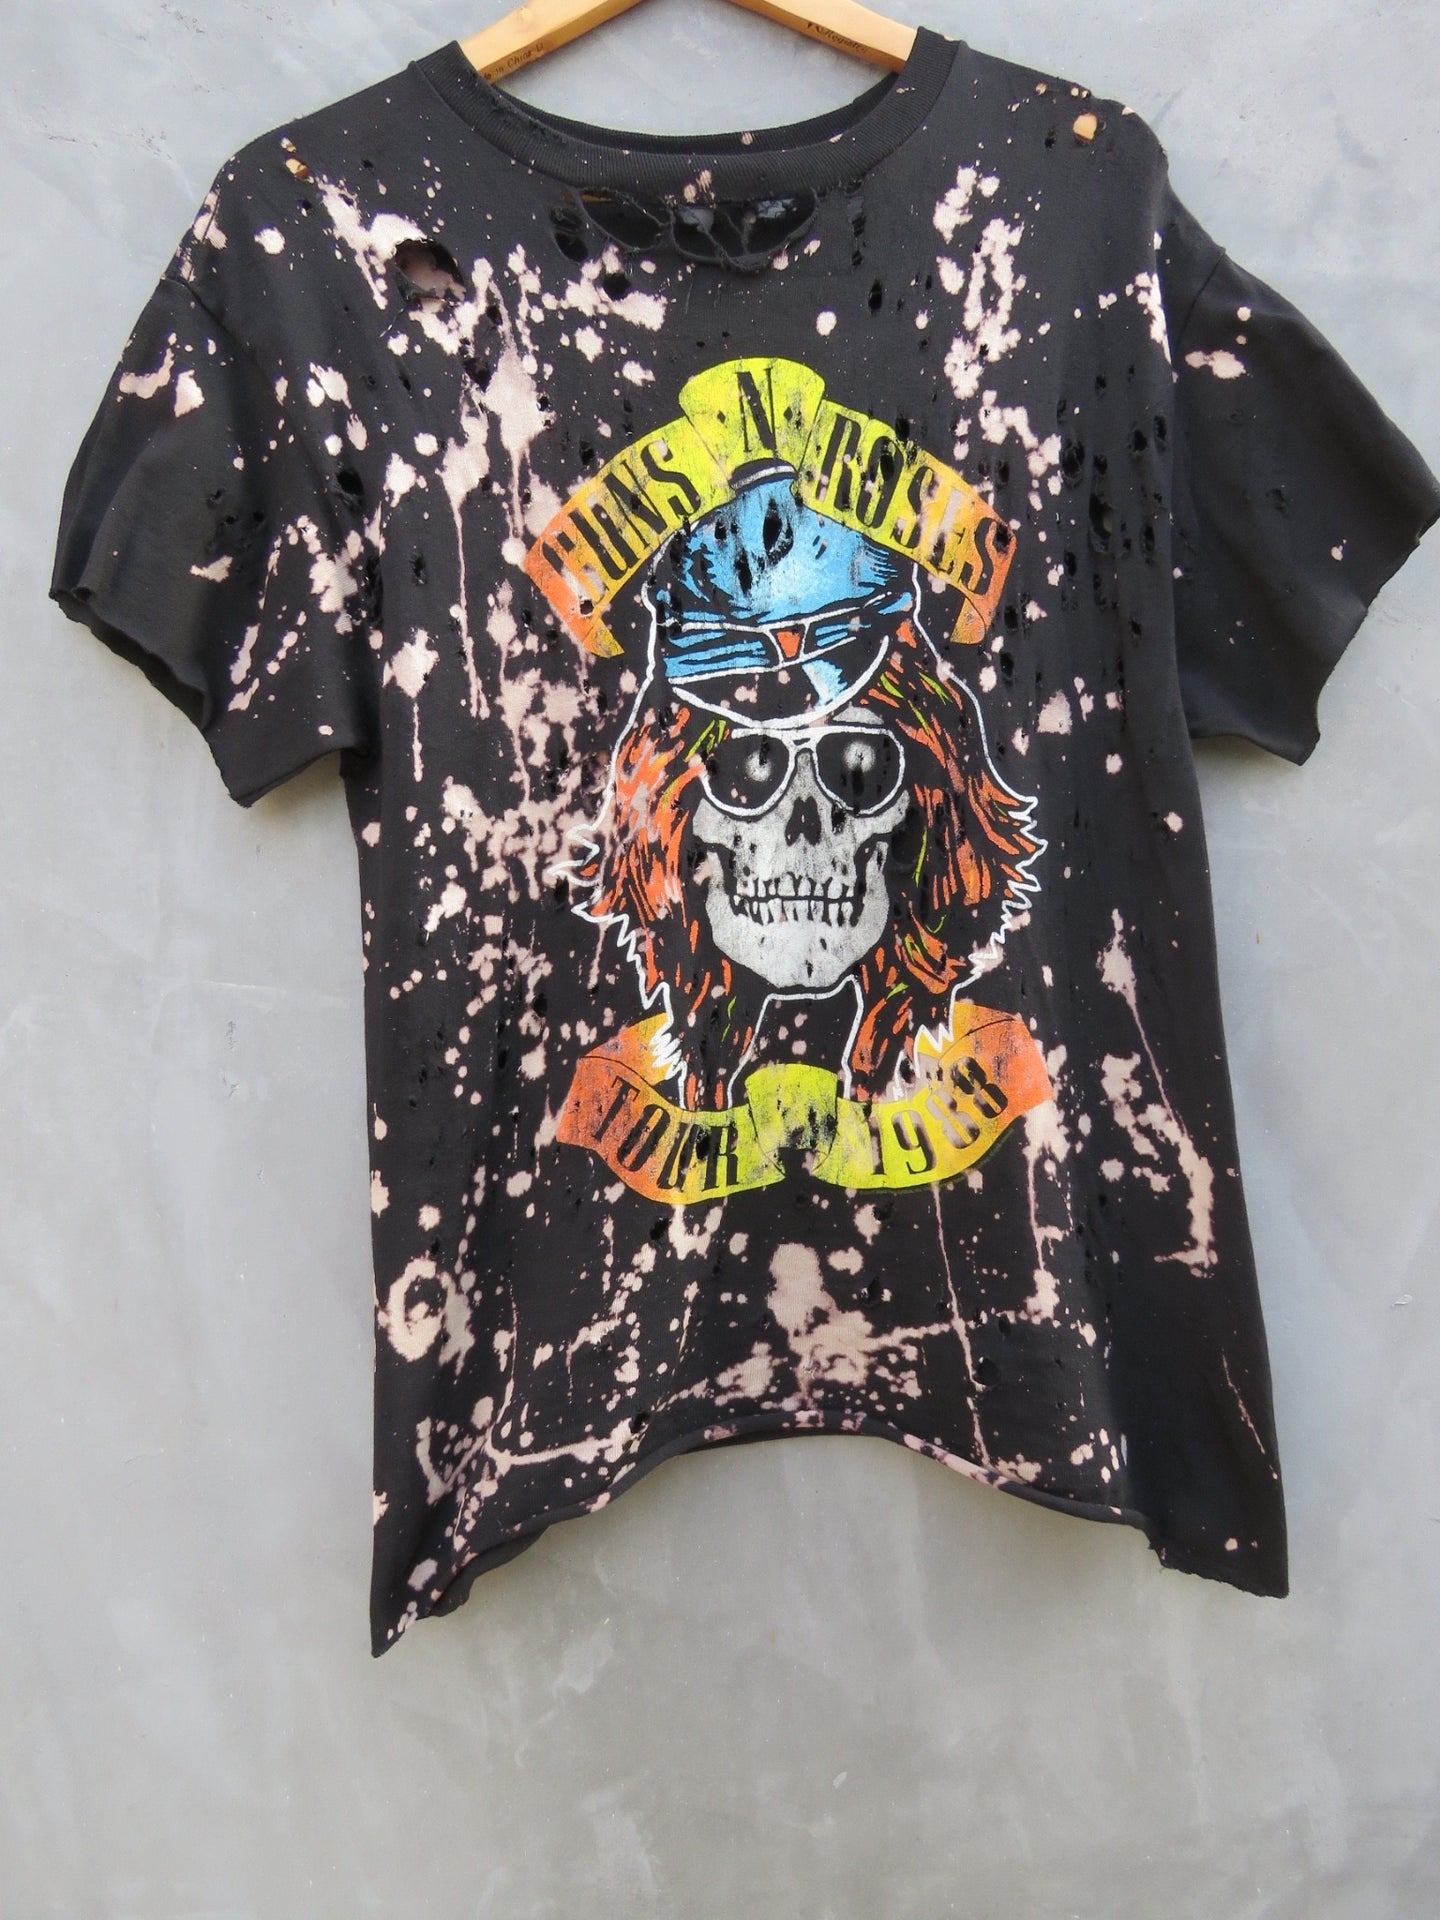 Guns N Roses Appetite for Destruction 1988 Tour Tee